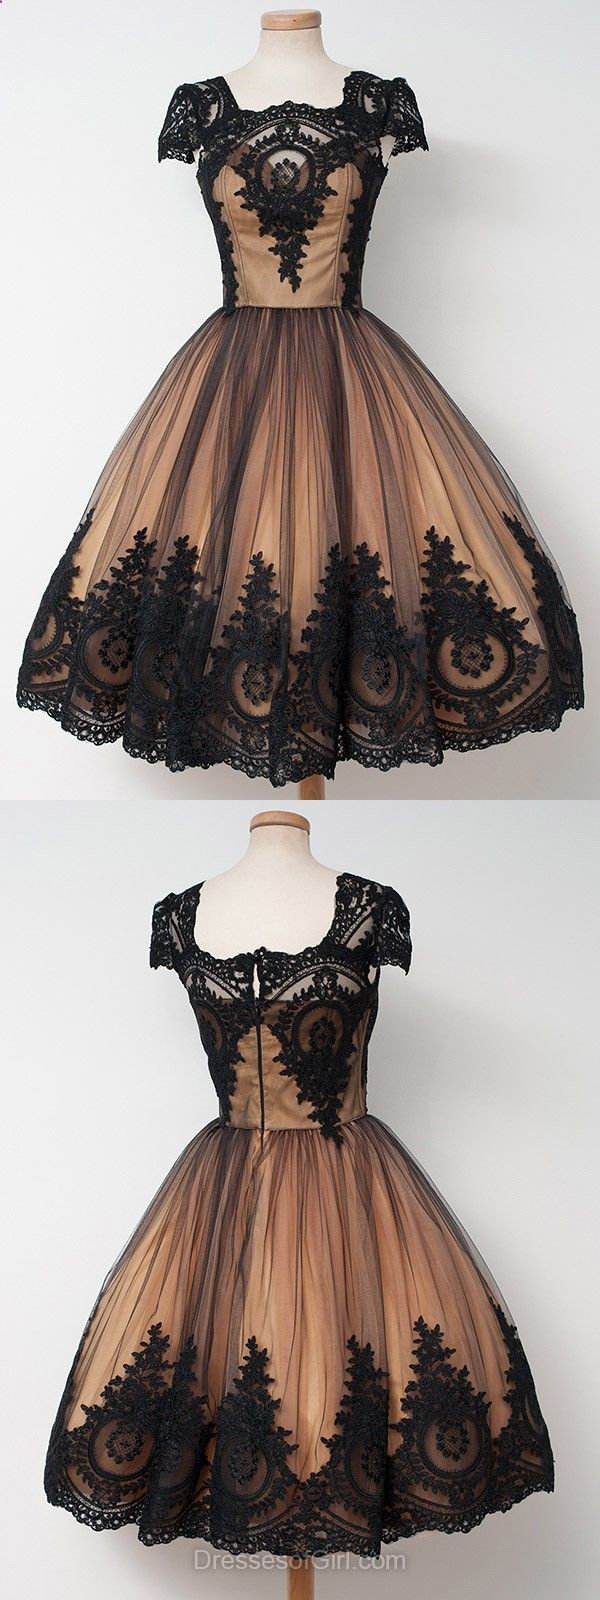 Short prom dress ball gown prom dresses vintage homecoming dress